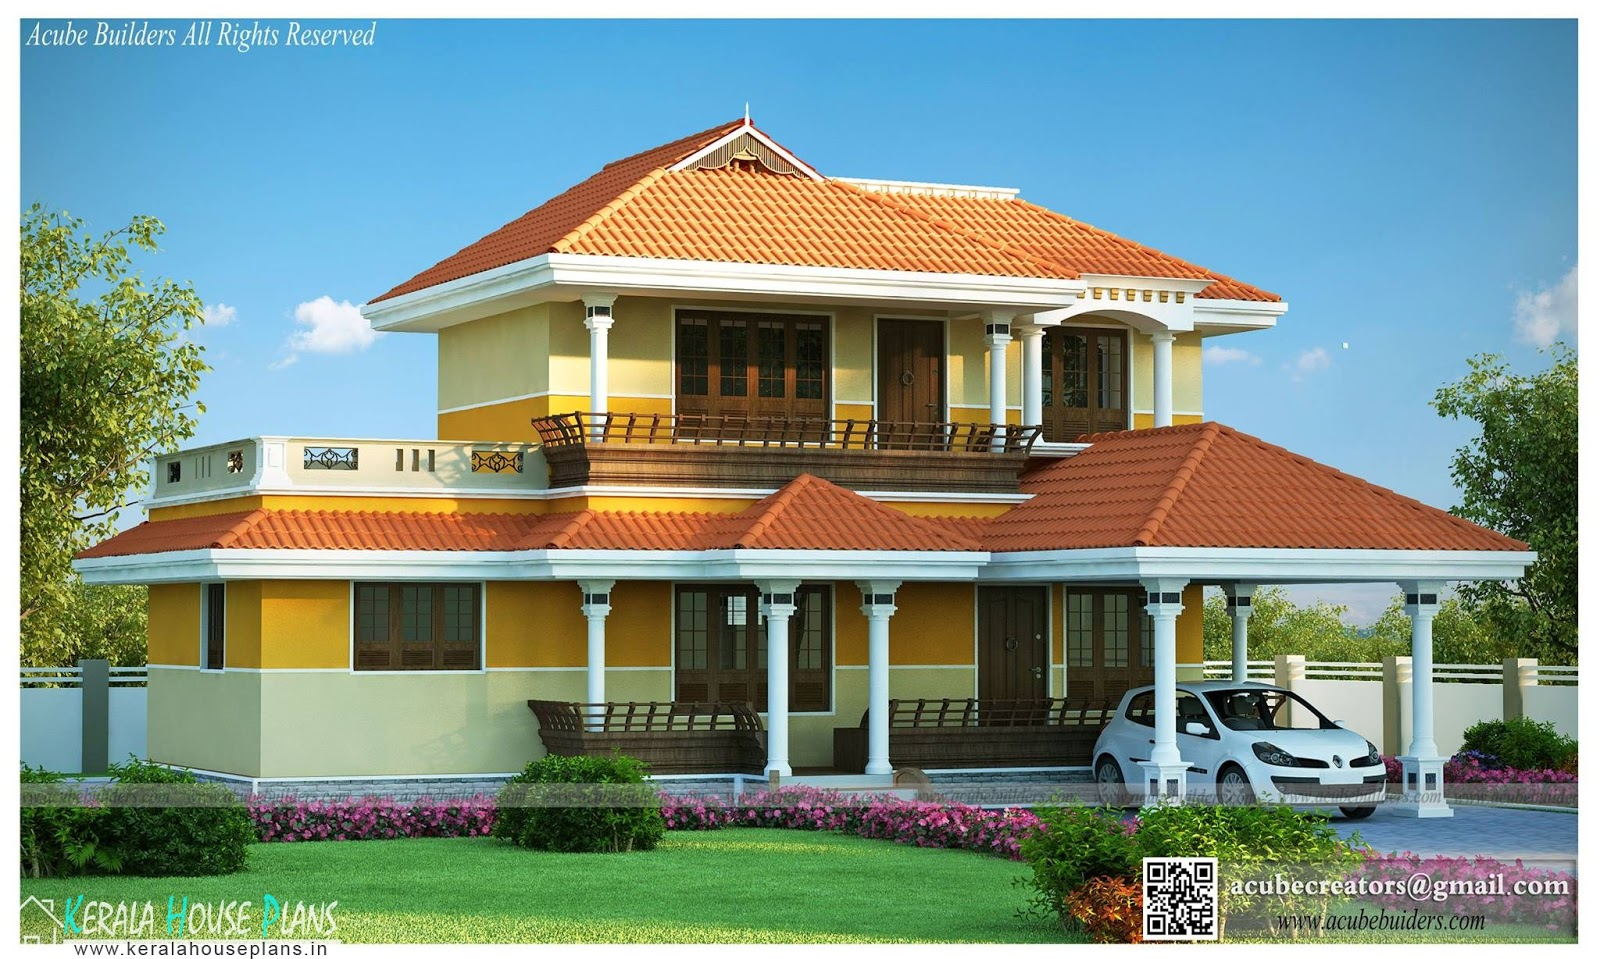 Traditional house plans in kerala kerala house plans for Traditional house plans in kerala